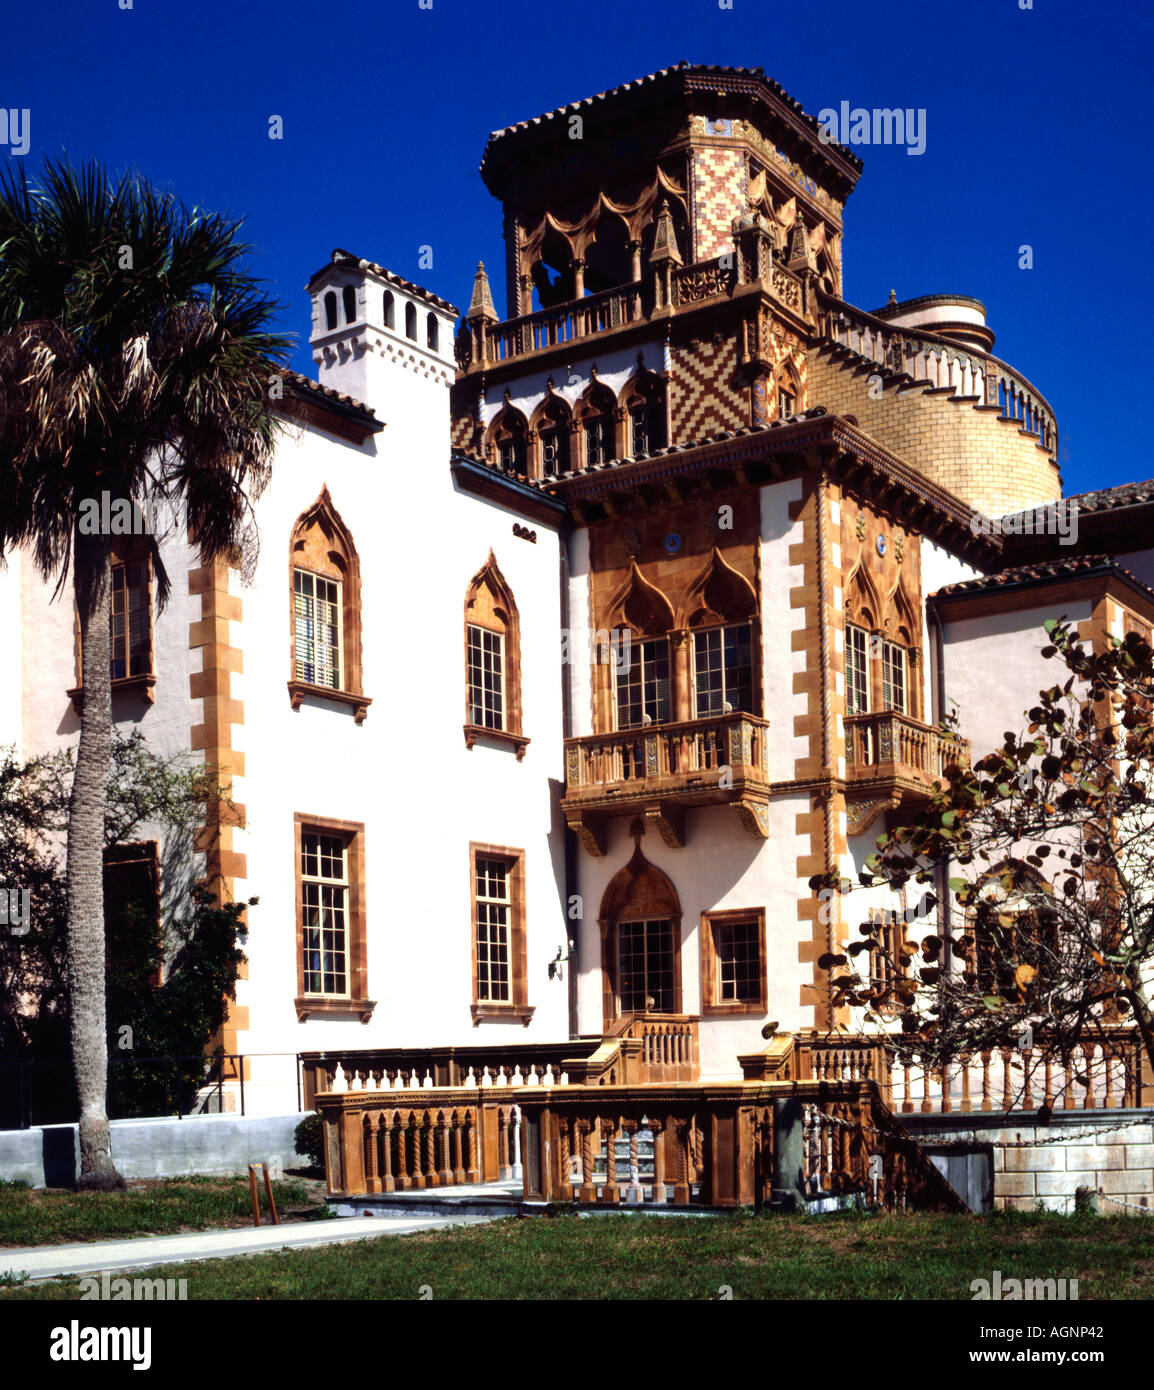 Ca D Zan Mansion at the John and Mable Ringling estate in Sarasota in Florida Stock Photo